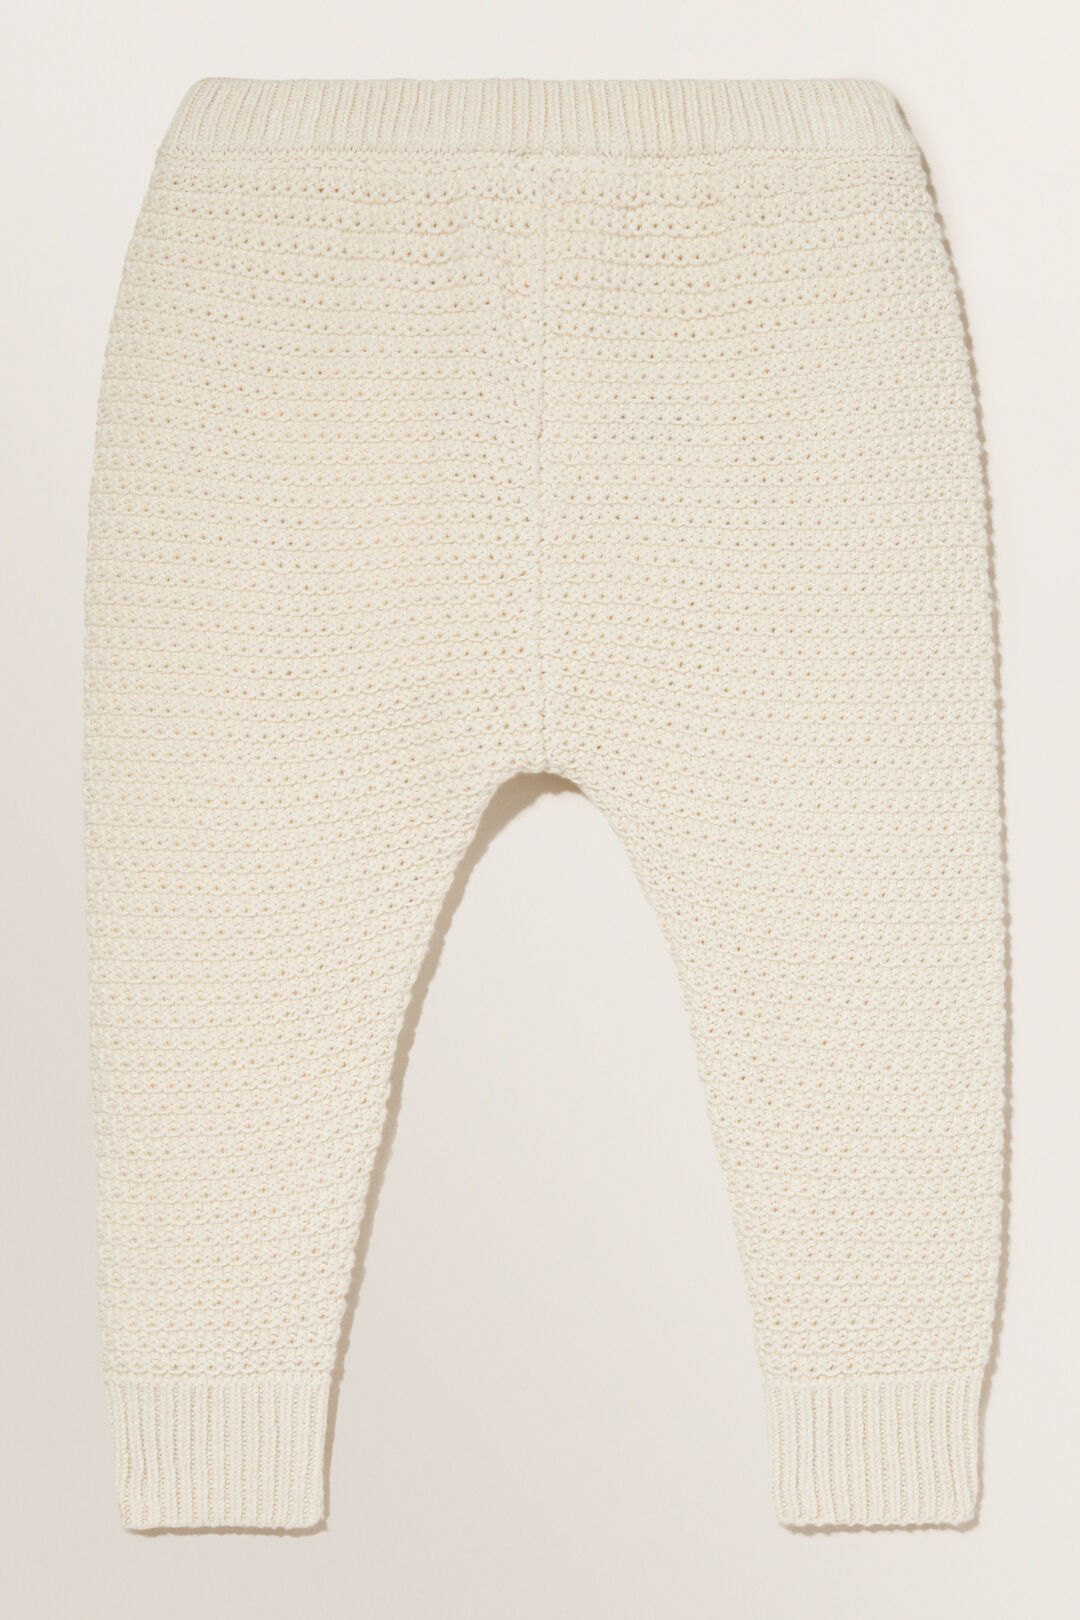 Knitted Stitch Pant  RICH CREAM  hi-res